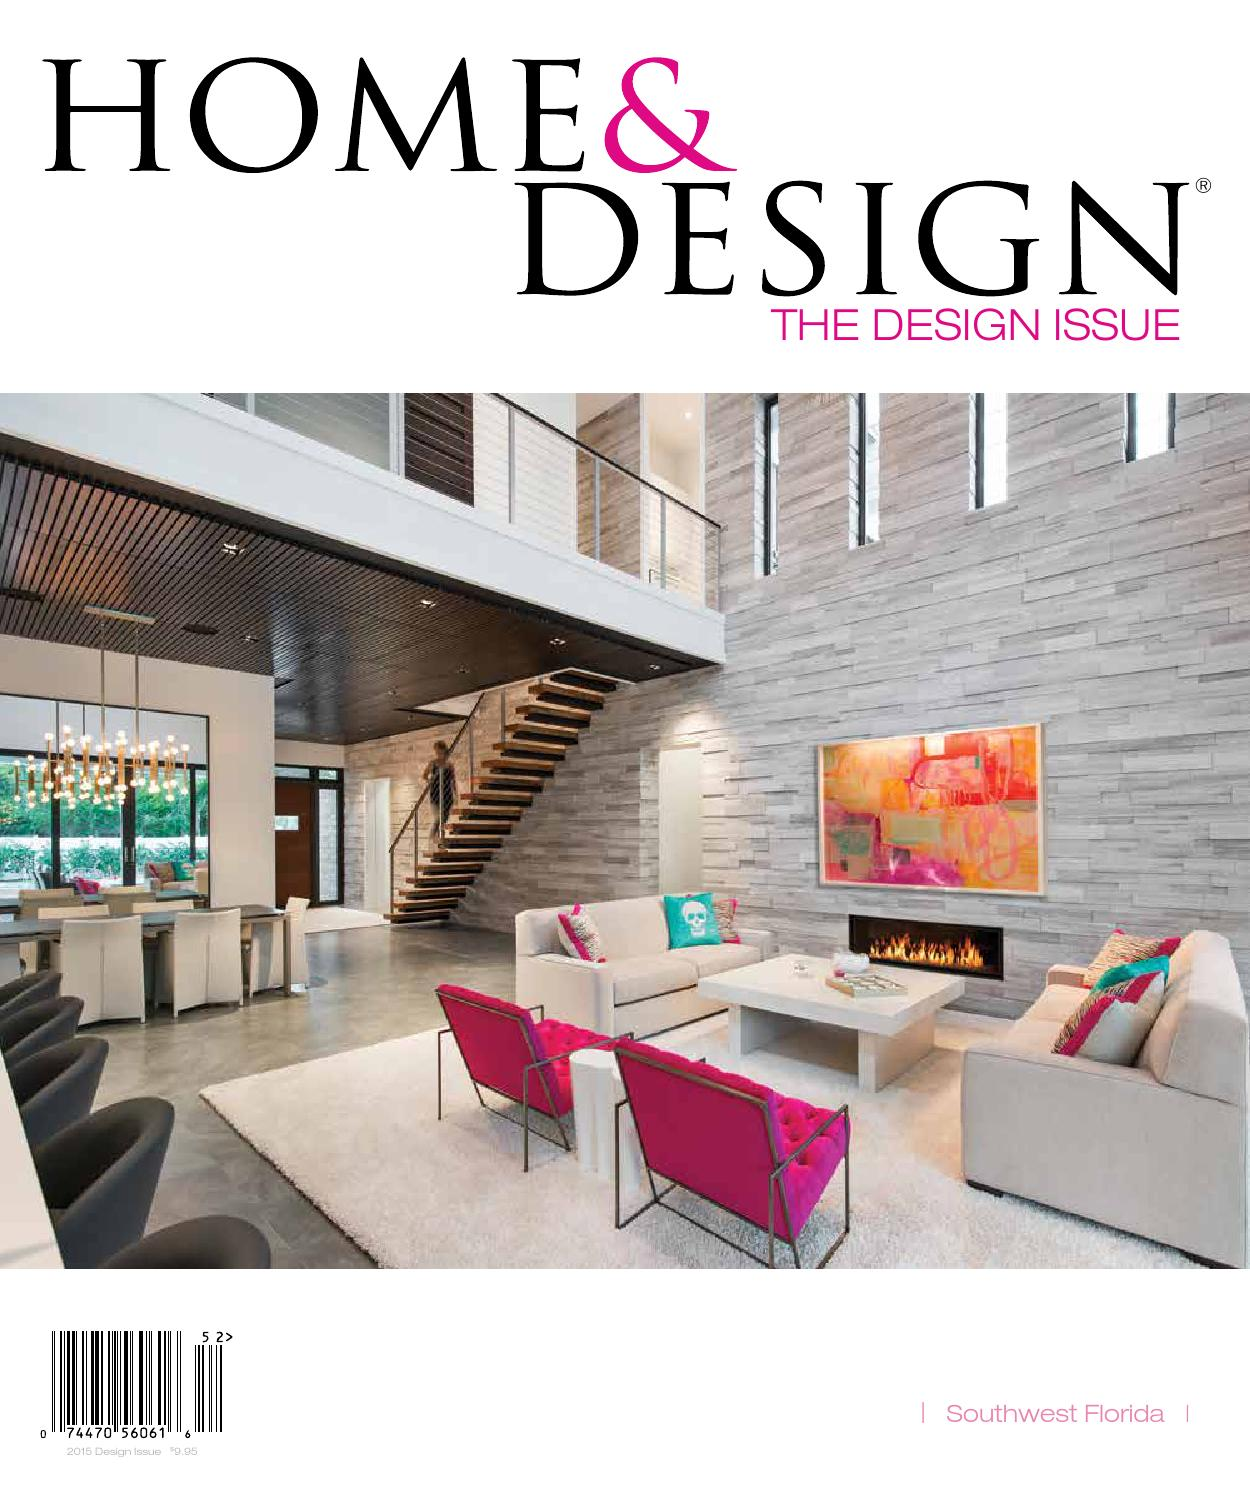 home design magazine design issue 2015 southwest florida edition by anthony spano issuu - Home Design Magazine